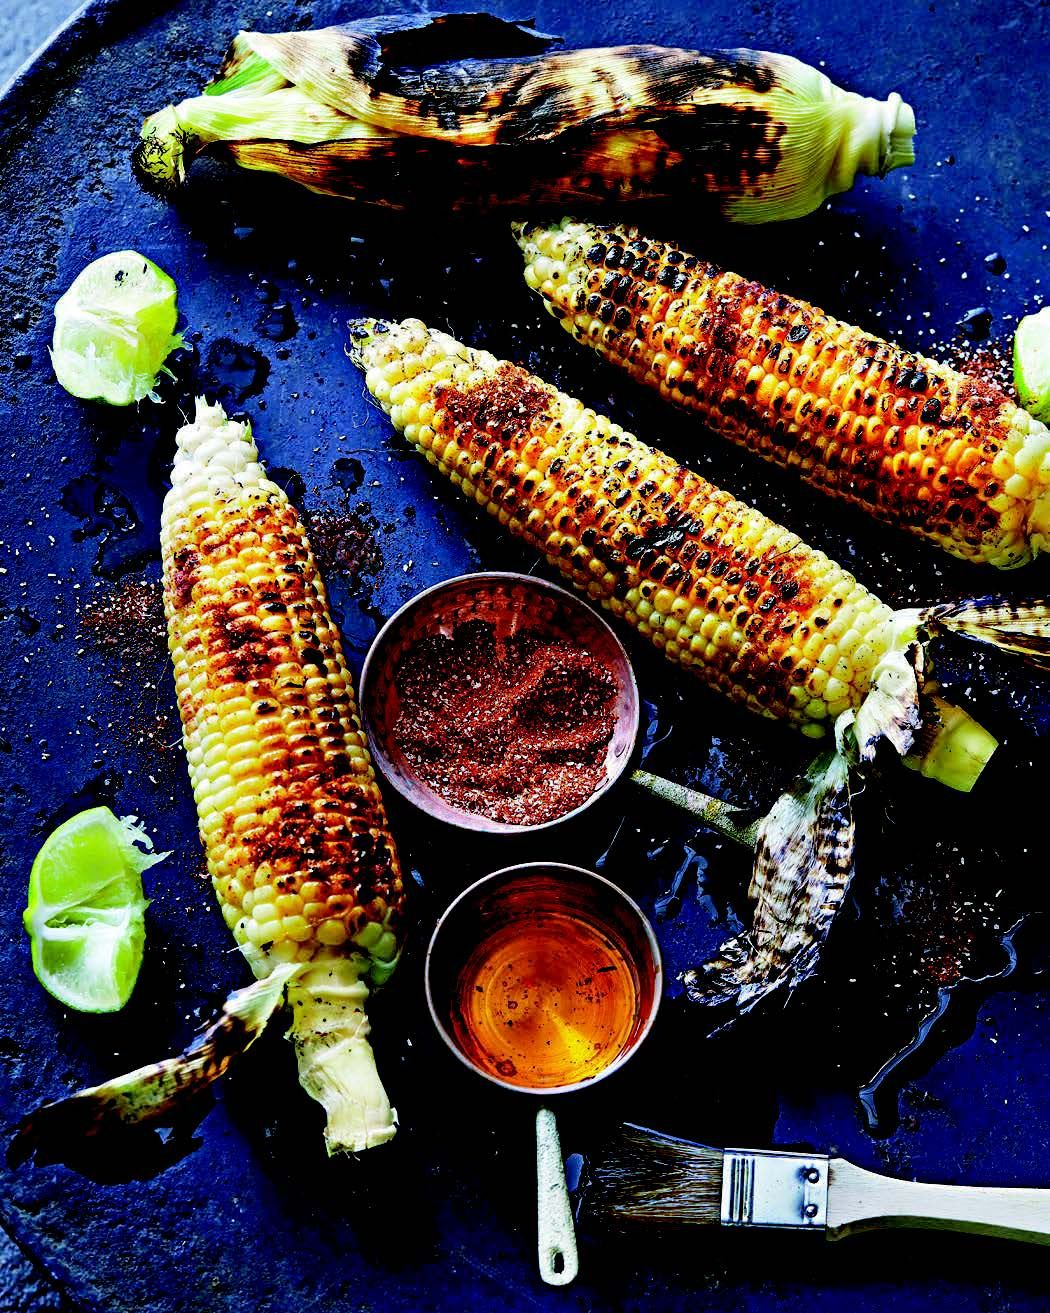 Aarti Sequeira Recipes Food Tv aarti sequeira's indian street corn recipe is the perfect summer-to-fall dish